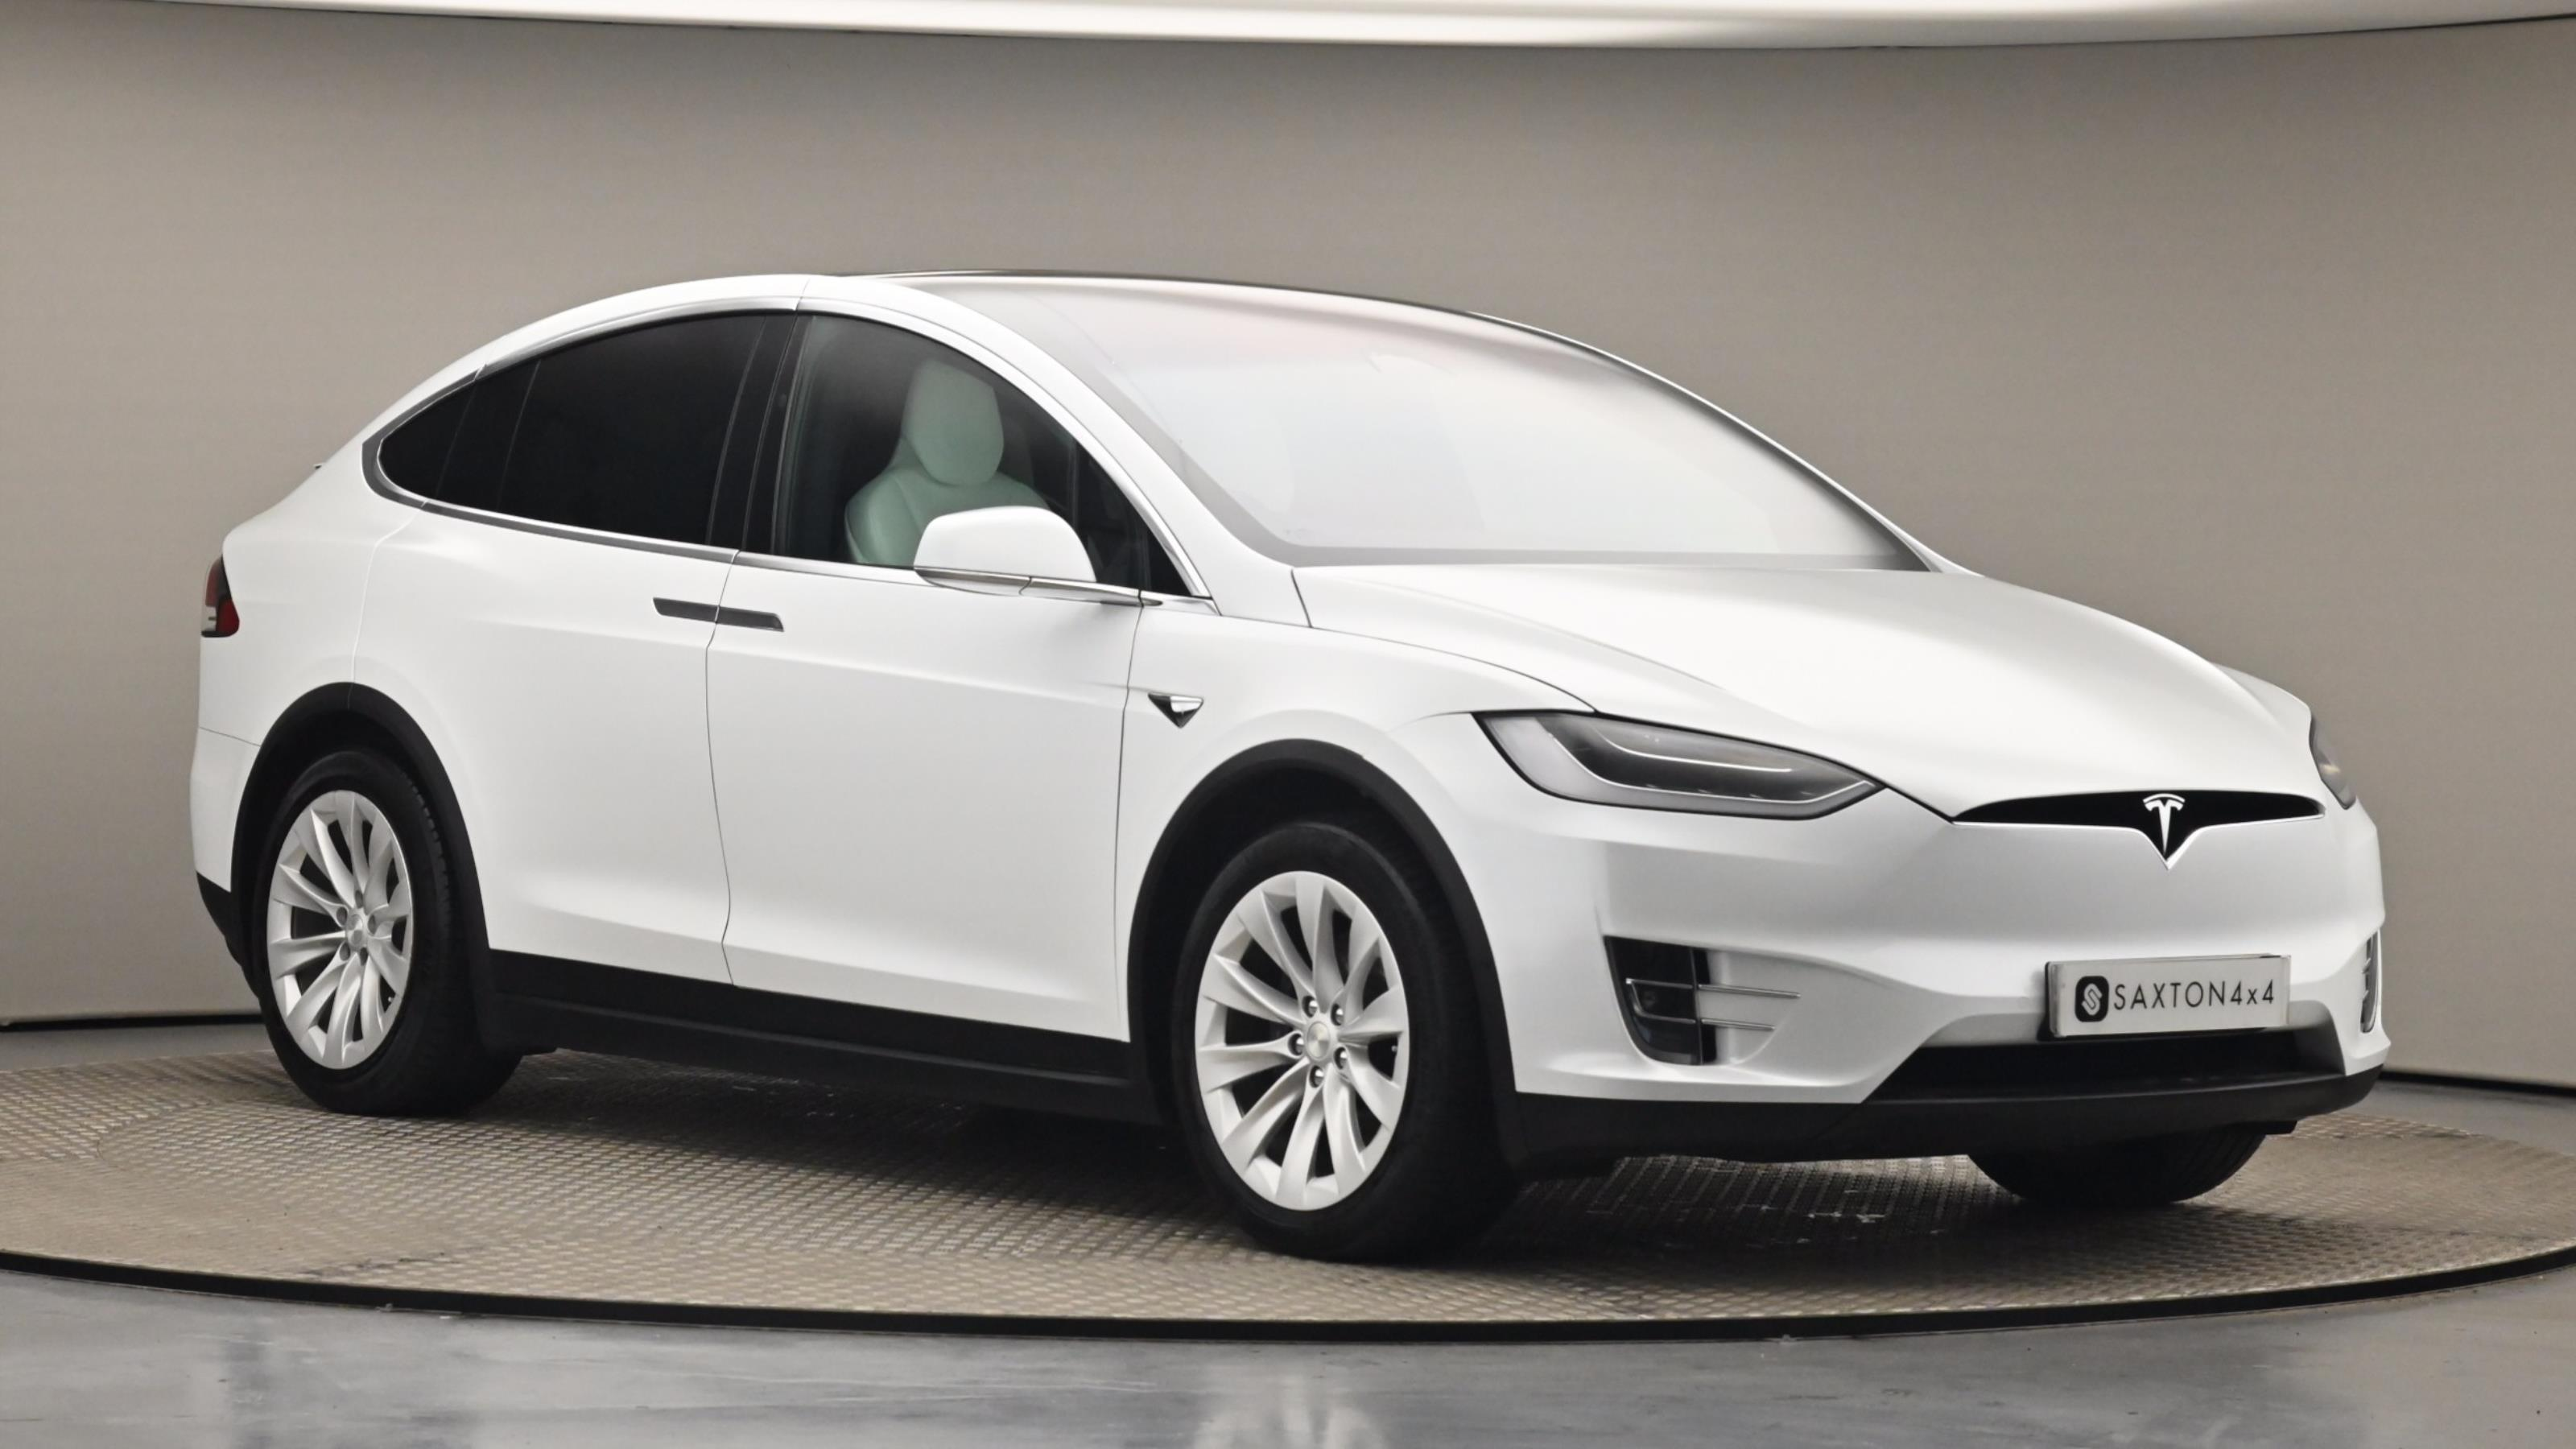 Used 2018 Tesla MODEL X 449kW 100kWh Dual Motor 5dr Auto White at Saxton4x4